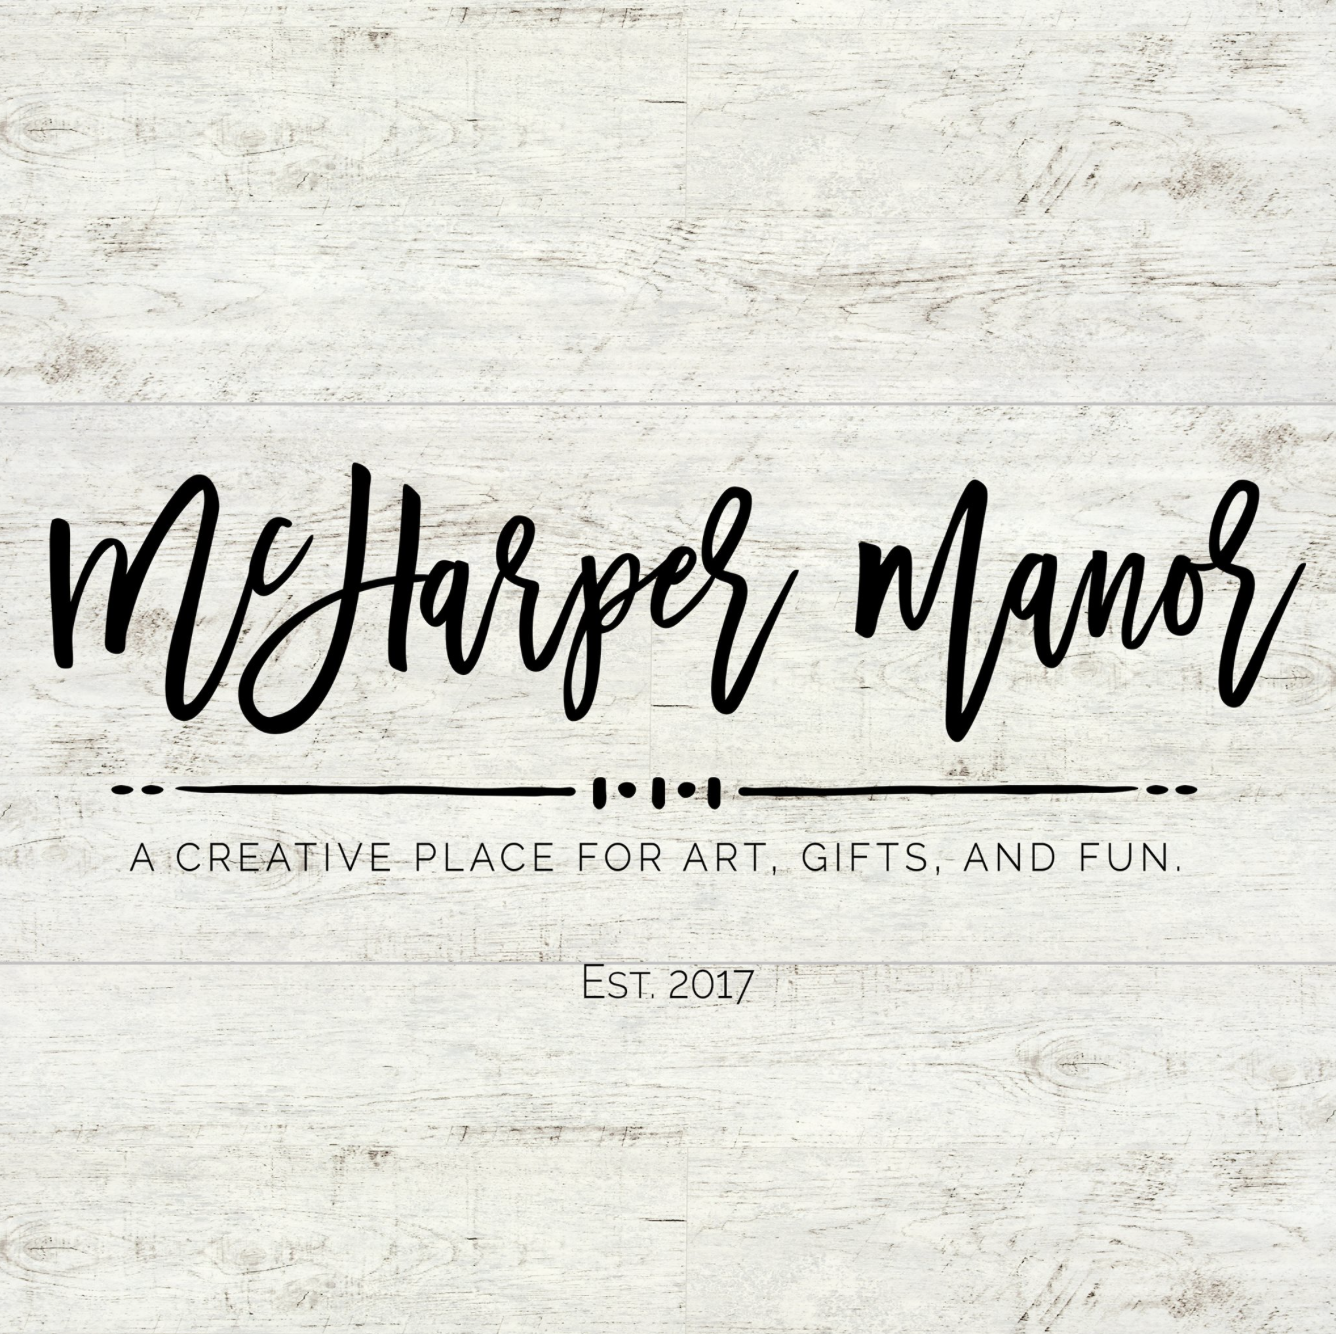 McHARPER MANOR - We're a husband/wife team from Cincinnati Ohio. We started with what we had - a need for extra income after our last baby, and random thrift shop finds. We started upcycling frames, painting & restoring them and filling them with prints of my digitally created art.